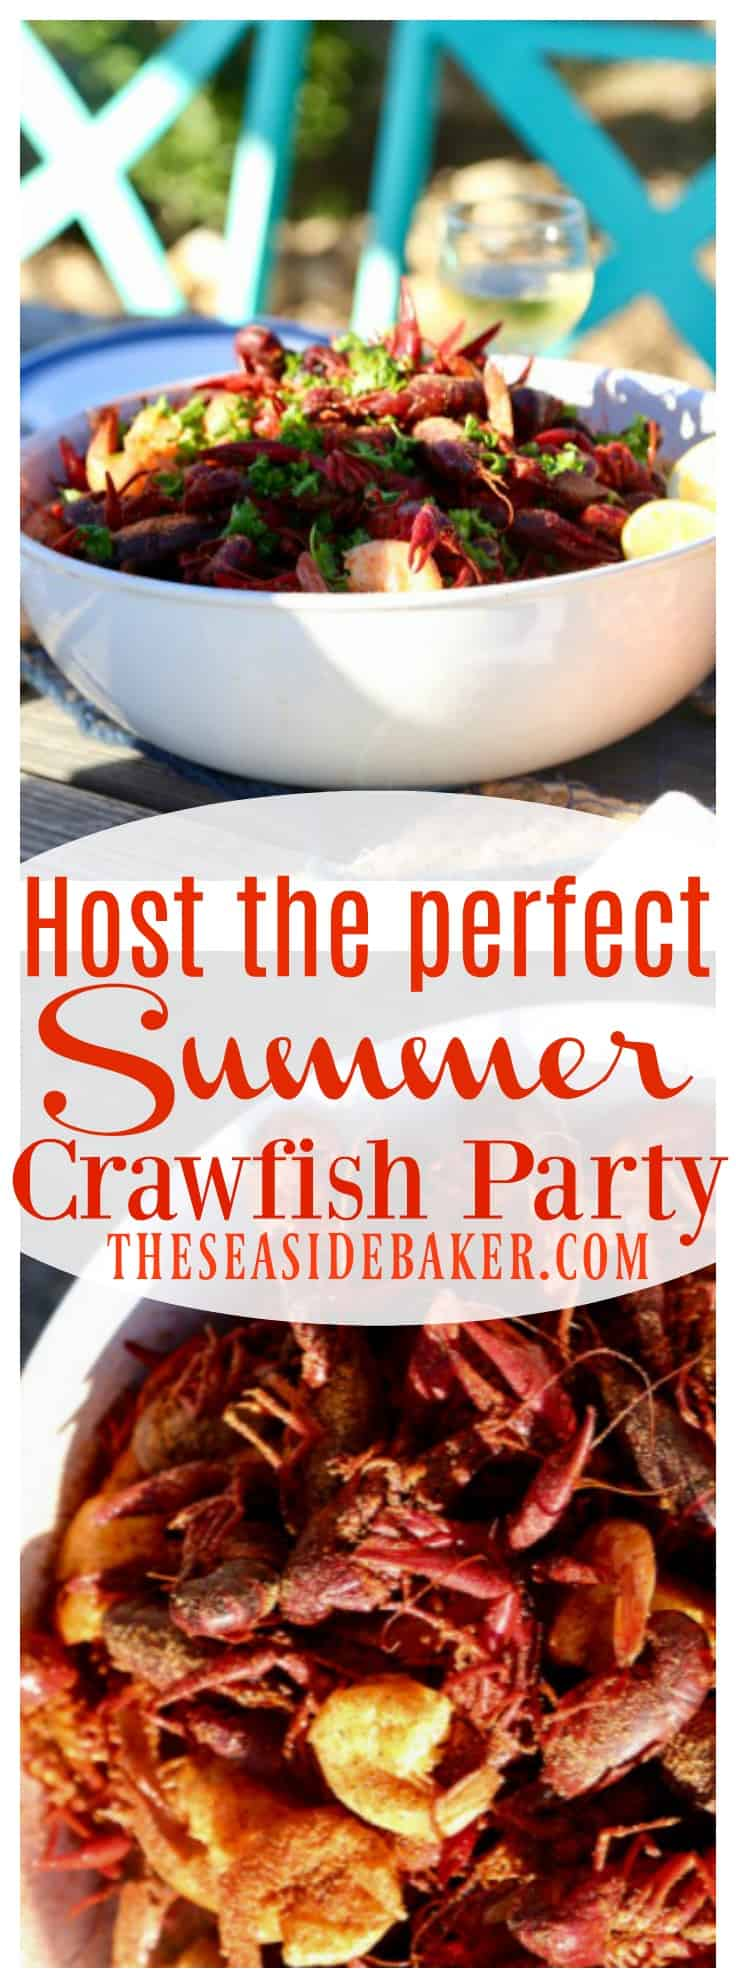 How to host the perfect summer crawfish party via @theseasidebaker